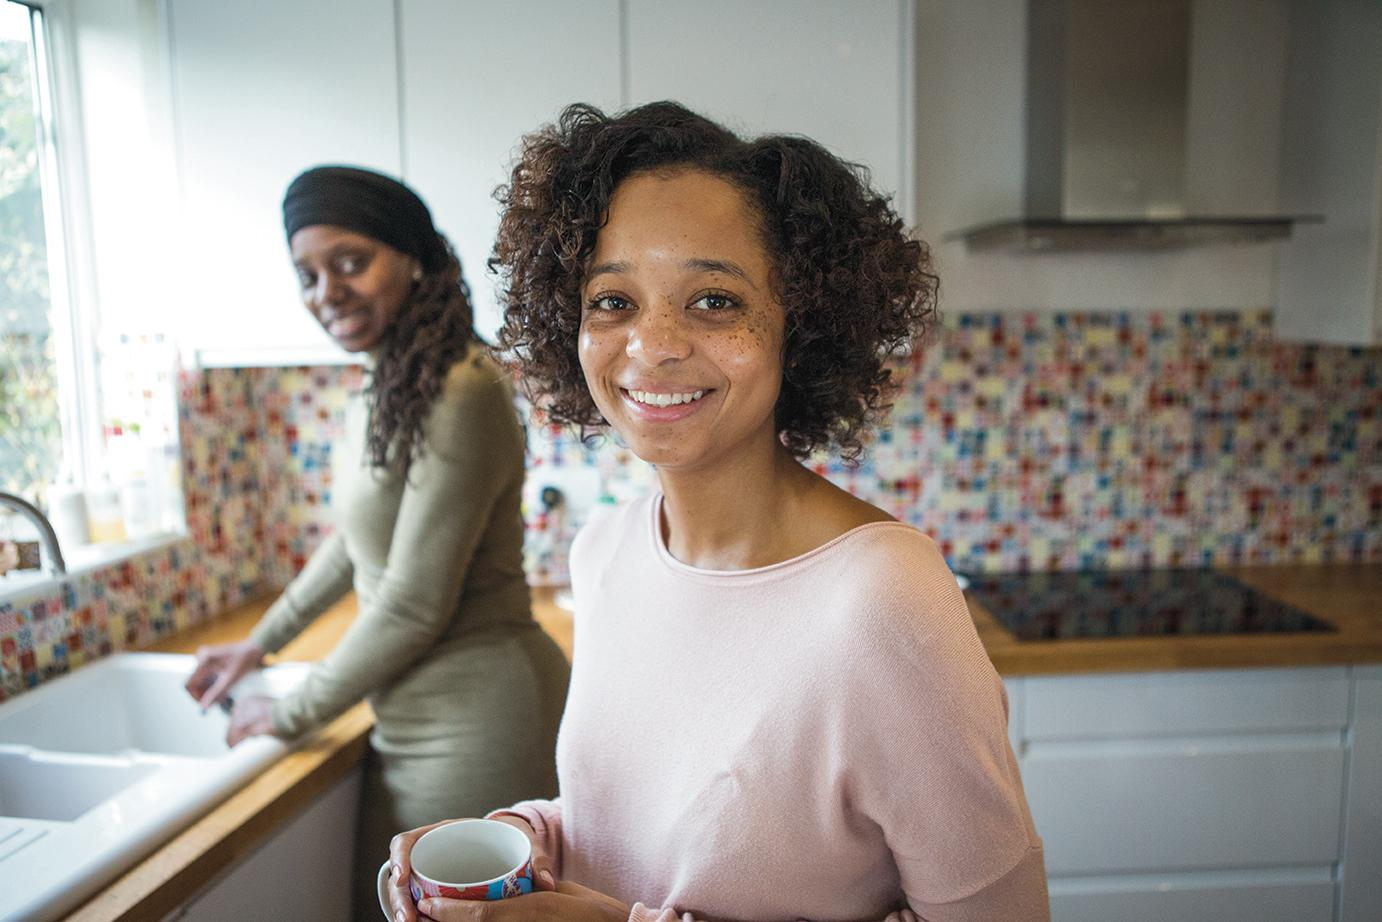 Teenage girl smiling in a kitchen with a woman smiling and standing behind her